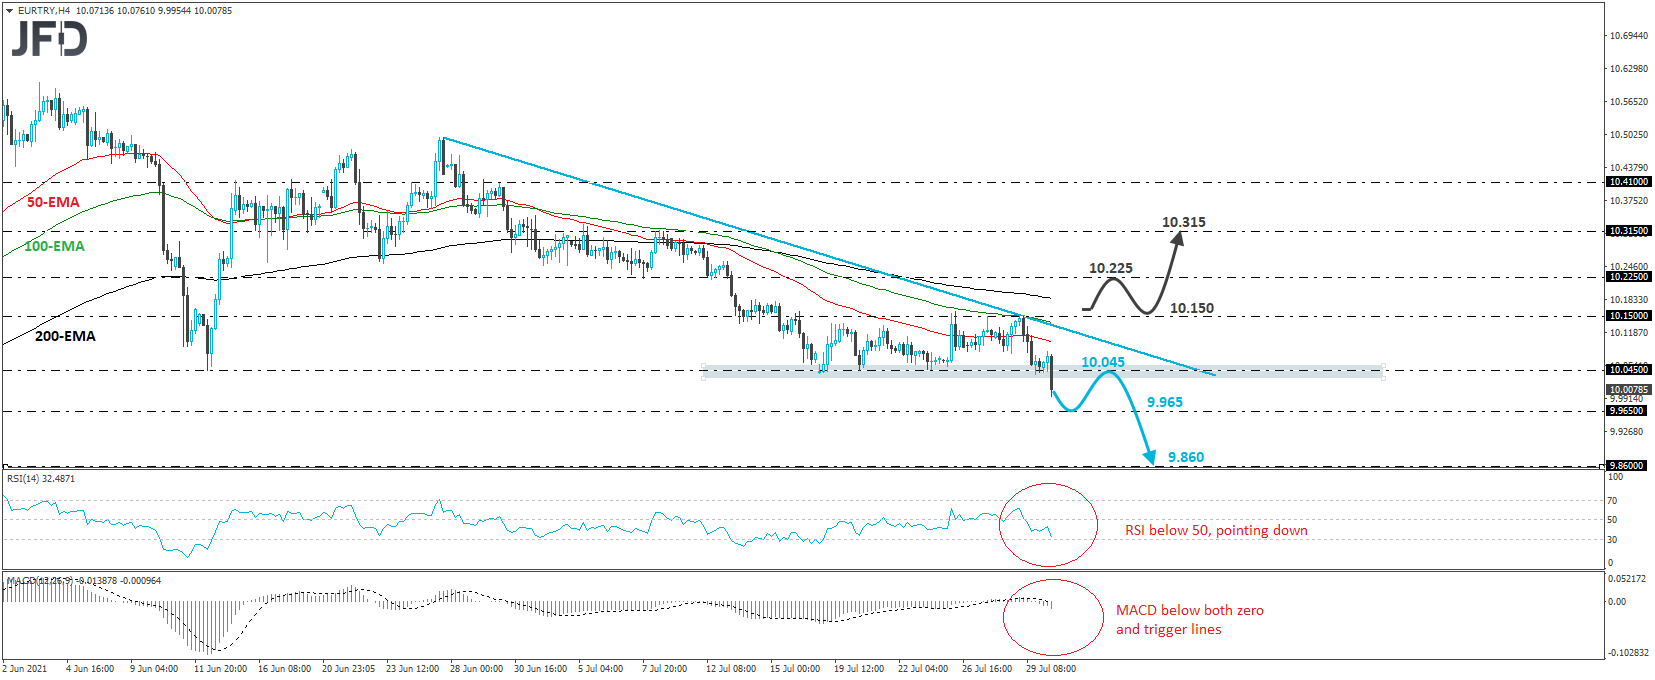 EUR/TRY 4-hour chart technical analysis